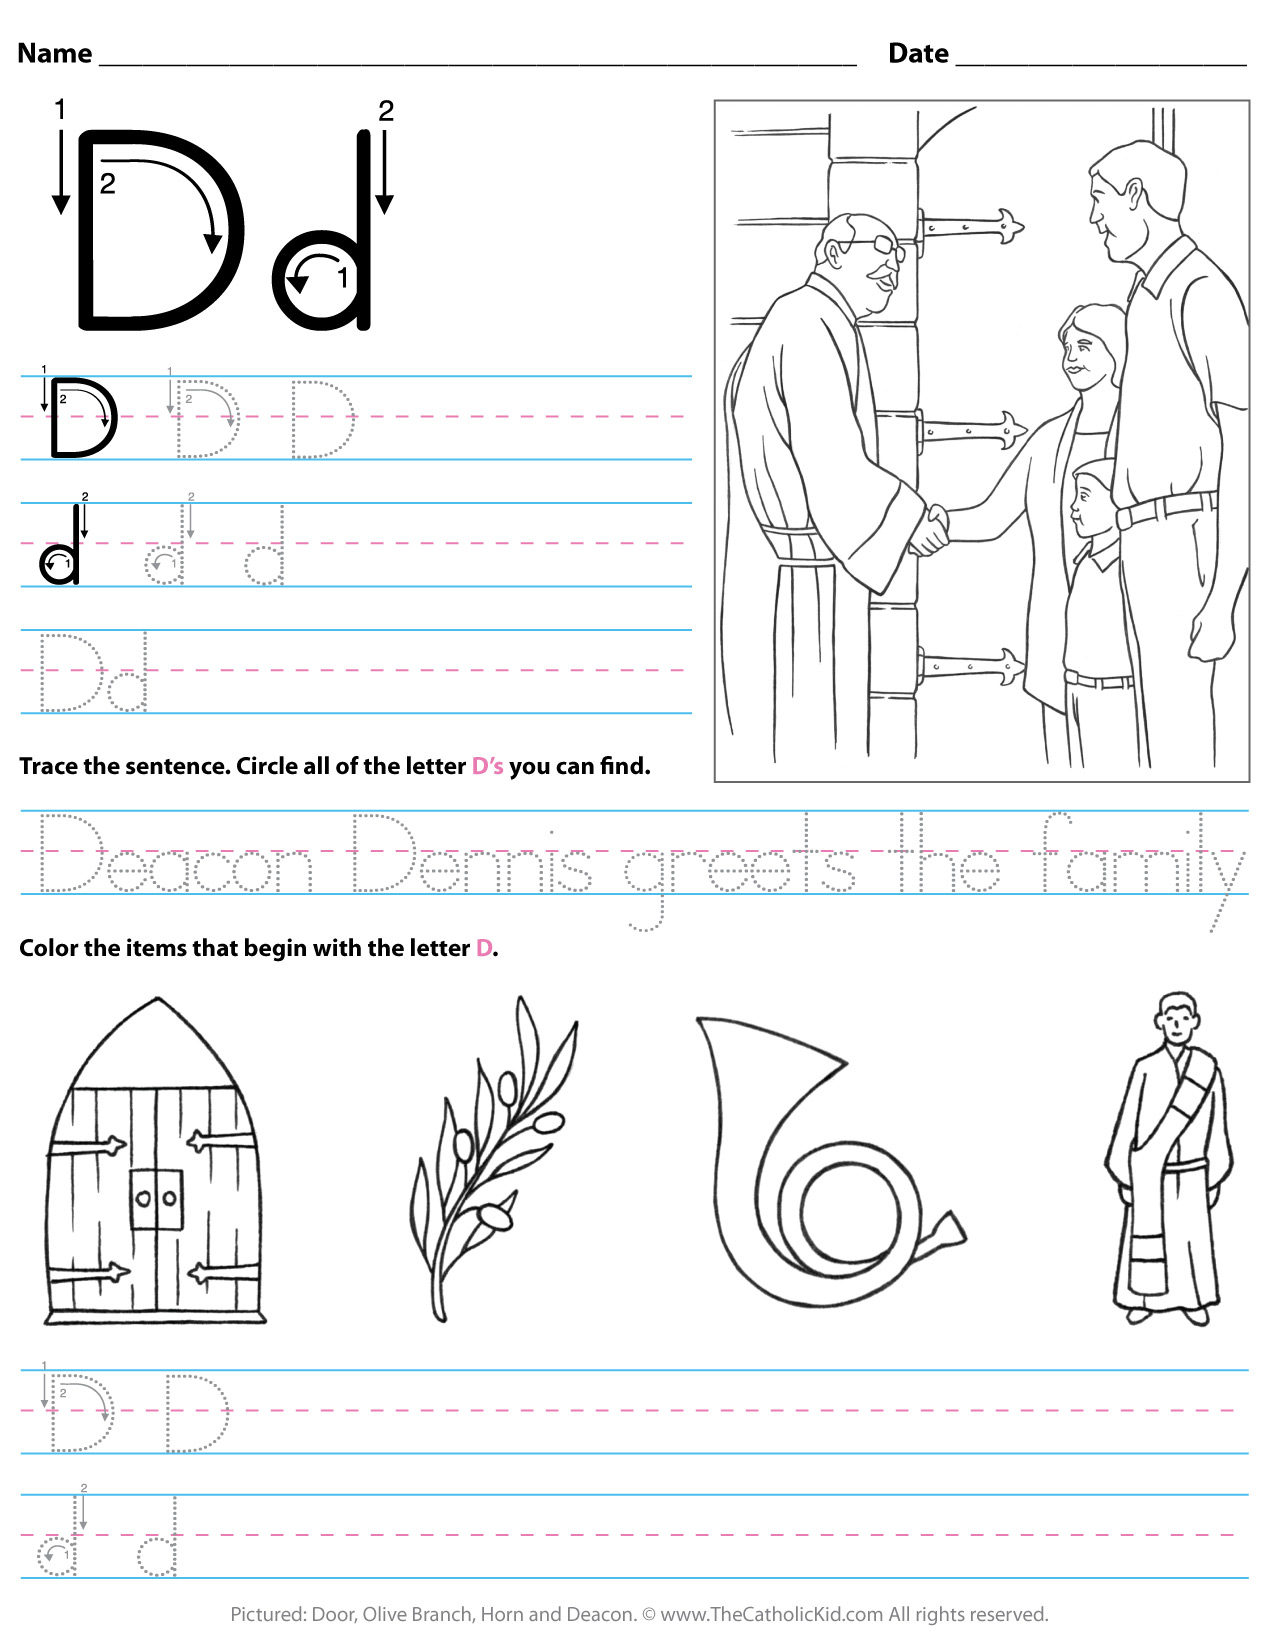 Catholic Alphabet Letter D Worksheet Preschool Kindergarten intended for Trace Letter D Worksheets Preschool